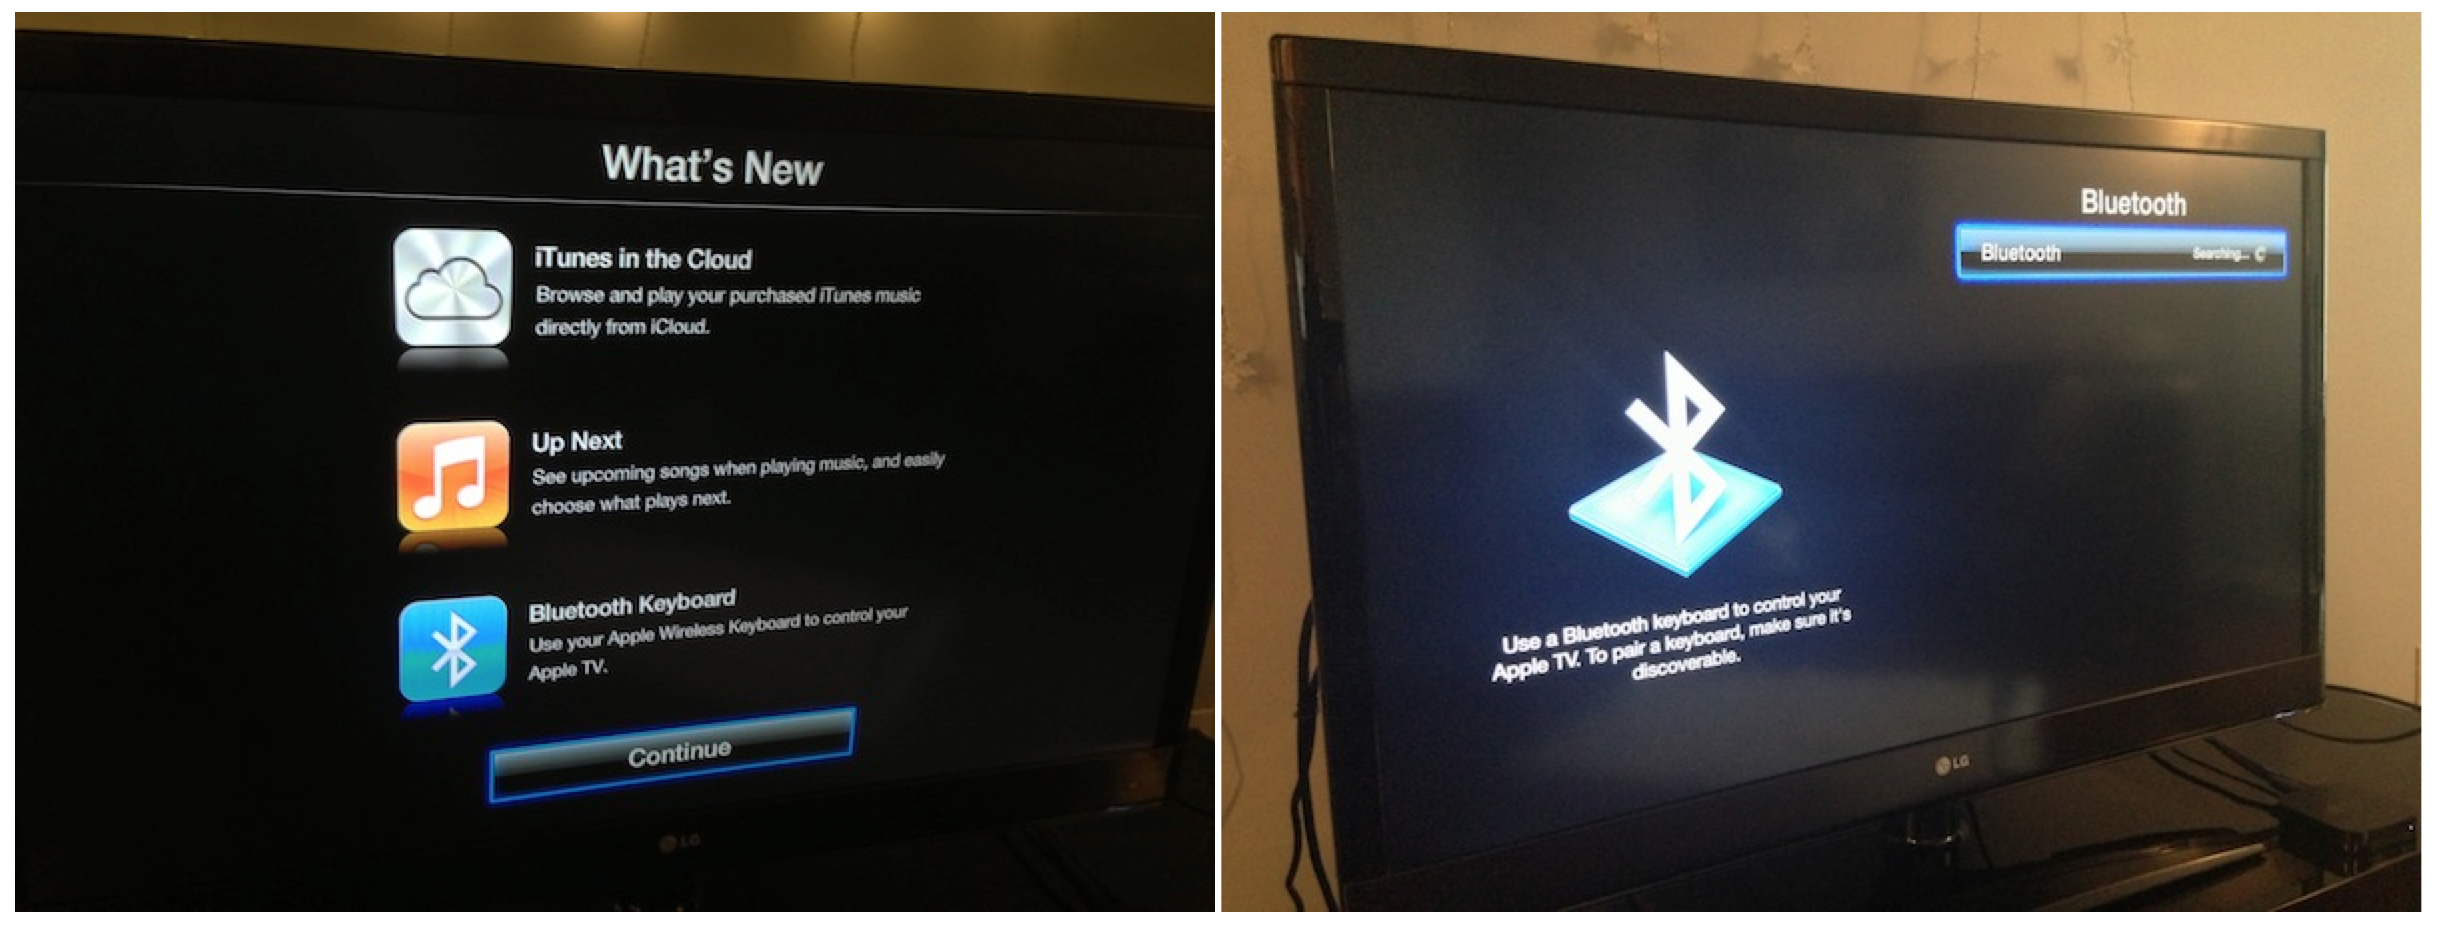 Apple-TV-6.1-Bluetooth